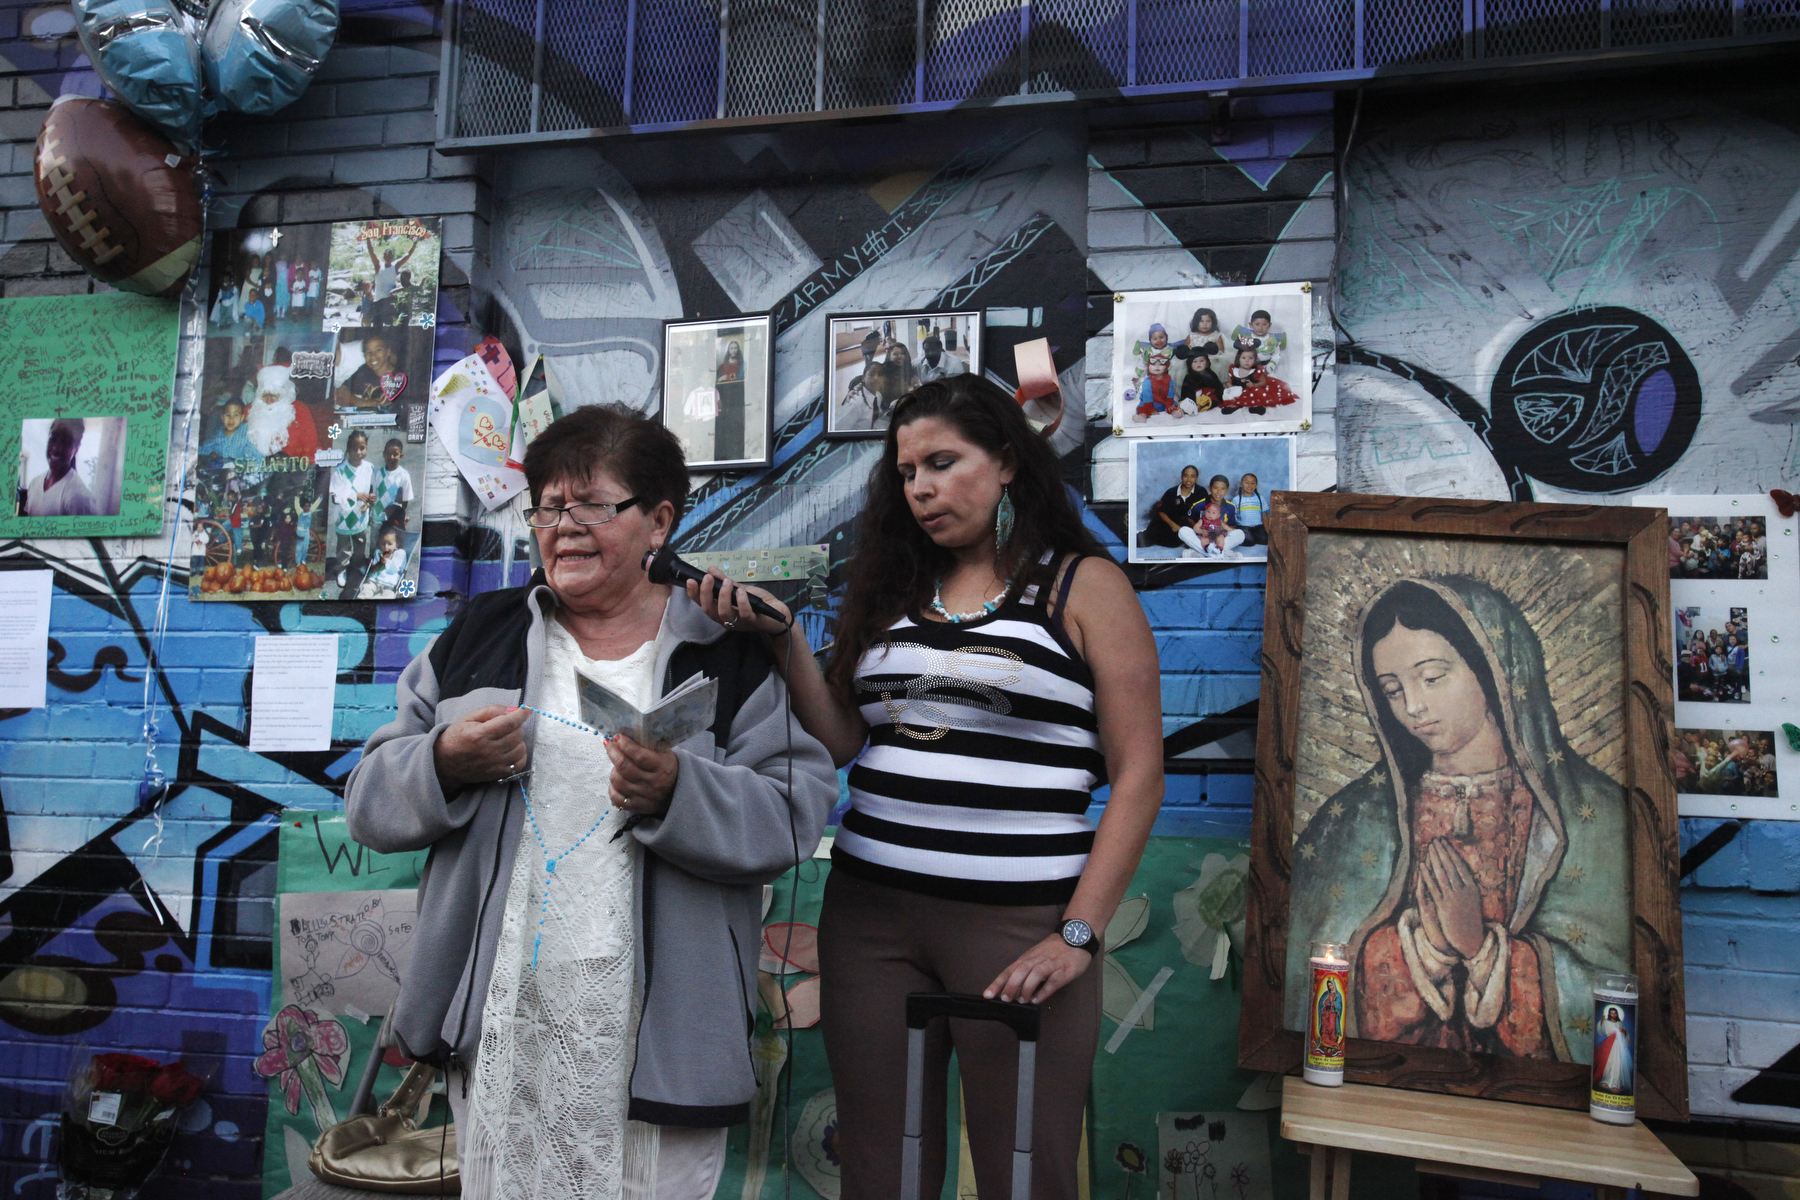 Victoria Morales, left, the grandmother of Williams, and his Aunt Ruth Morales lead the rosary during a vigil held in honor of Rashawn Williams, 14, at the corner where he was stabbed to death the previous week on 26th and Folsom Sept. 7, 2014 in San Francisco, Calif.